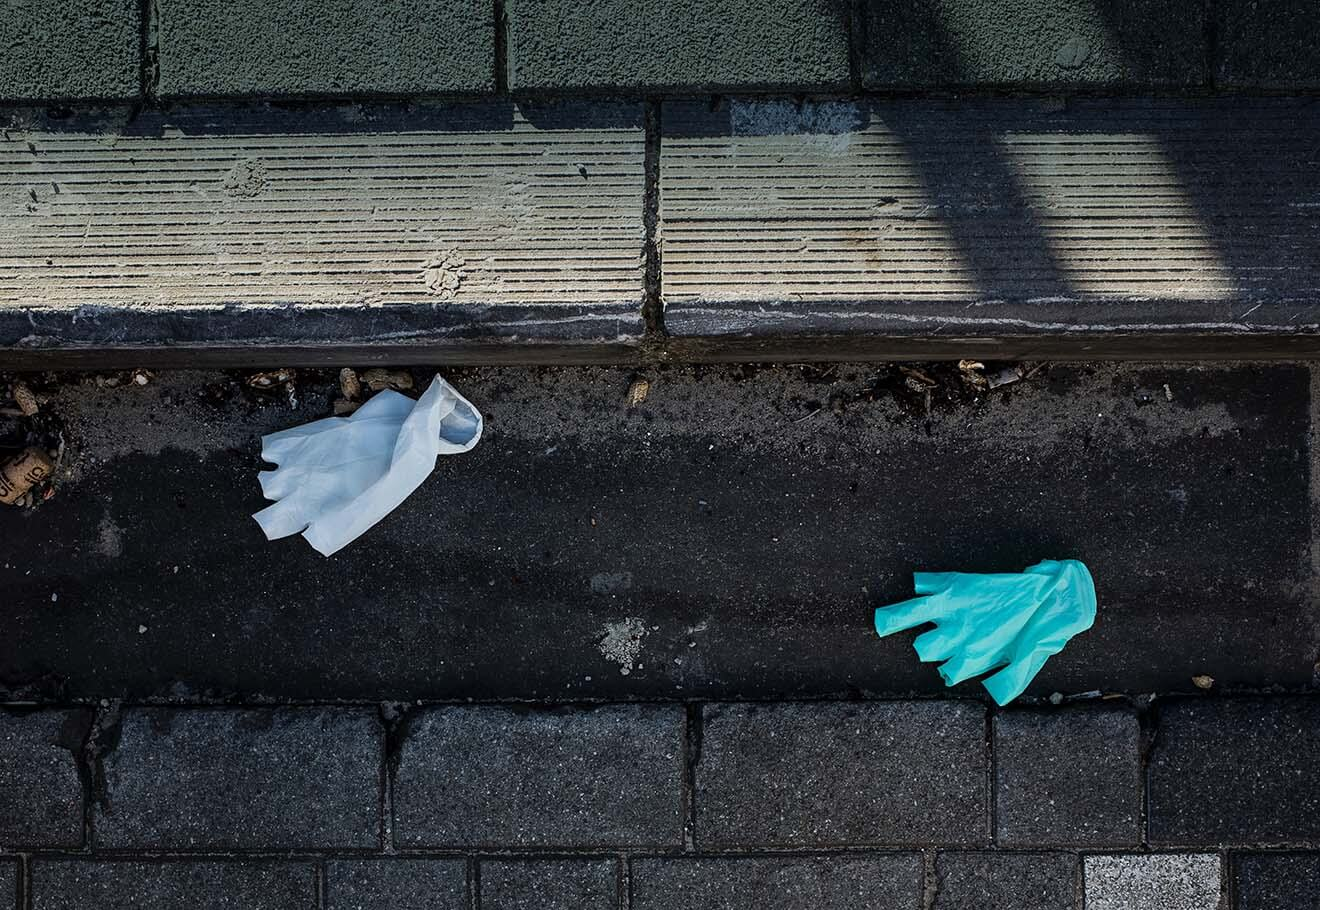 Disposable latex gloves littered on the ground